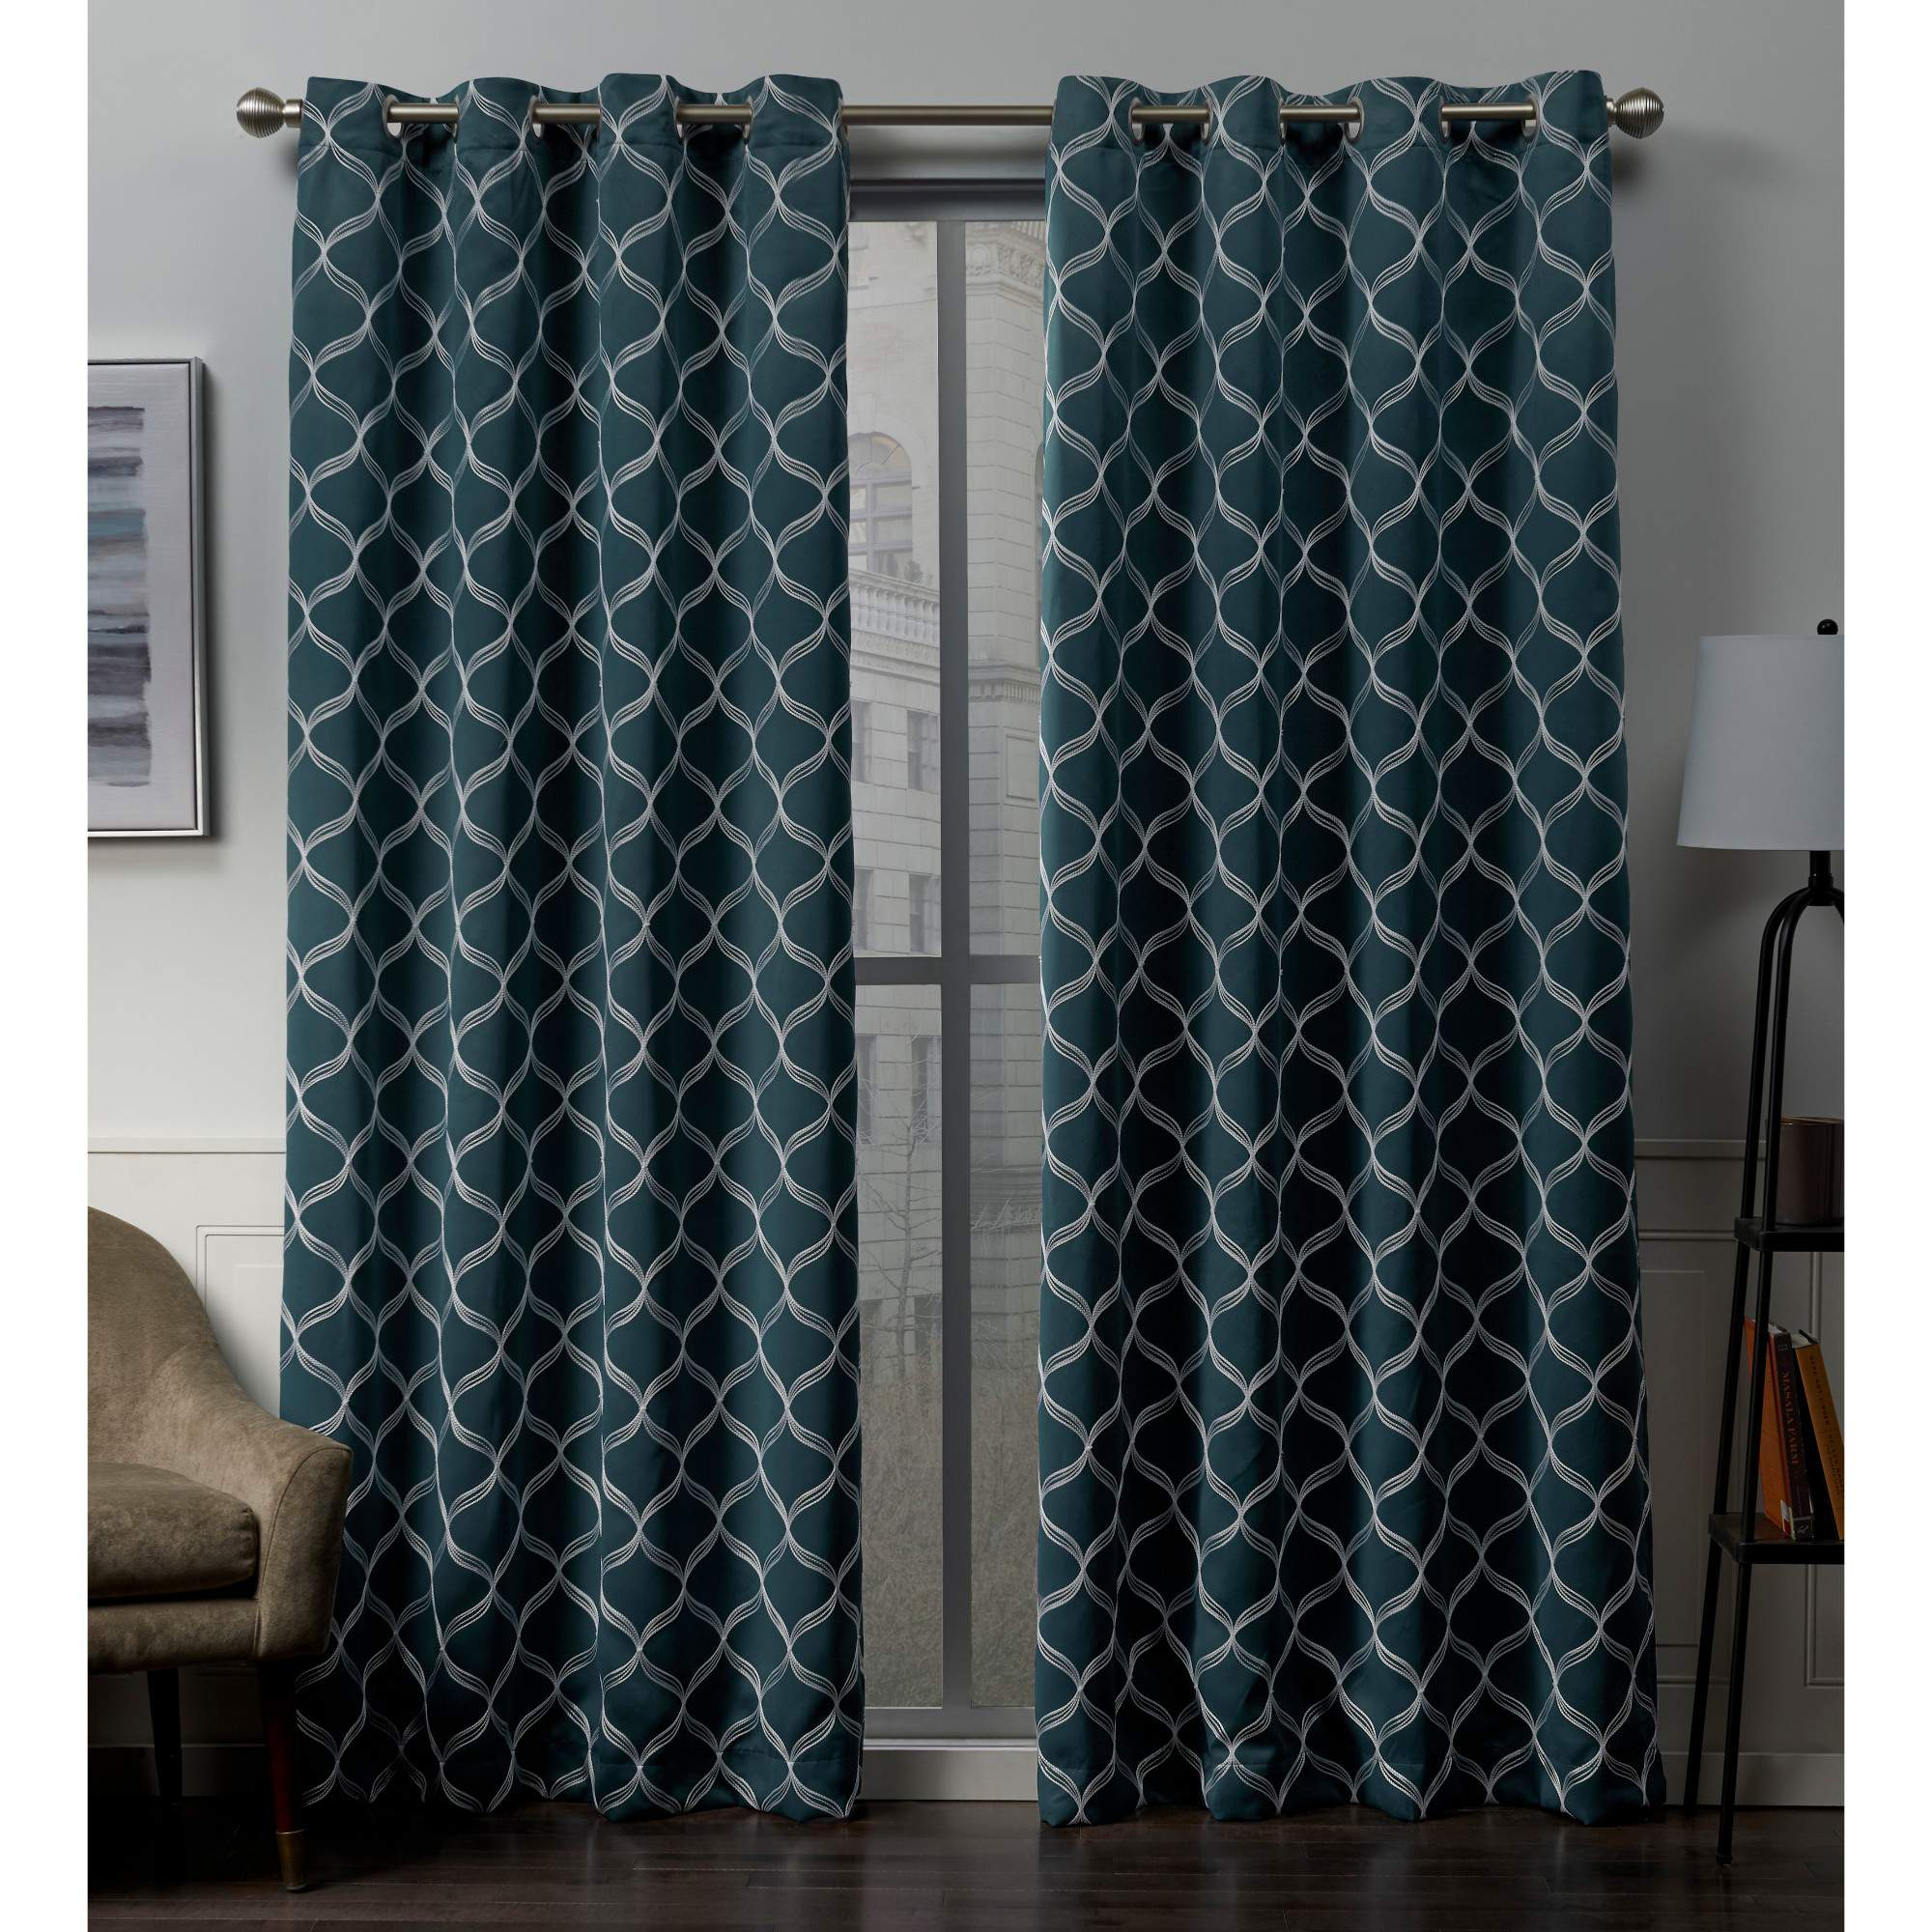 Exclusive Home Amelia Woven Blackout Grommet Top Curtain Panel Pair Intended For Woven Blackout Grommet Top Curtain Panel Pairs (View 5 of 30)